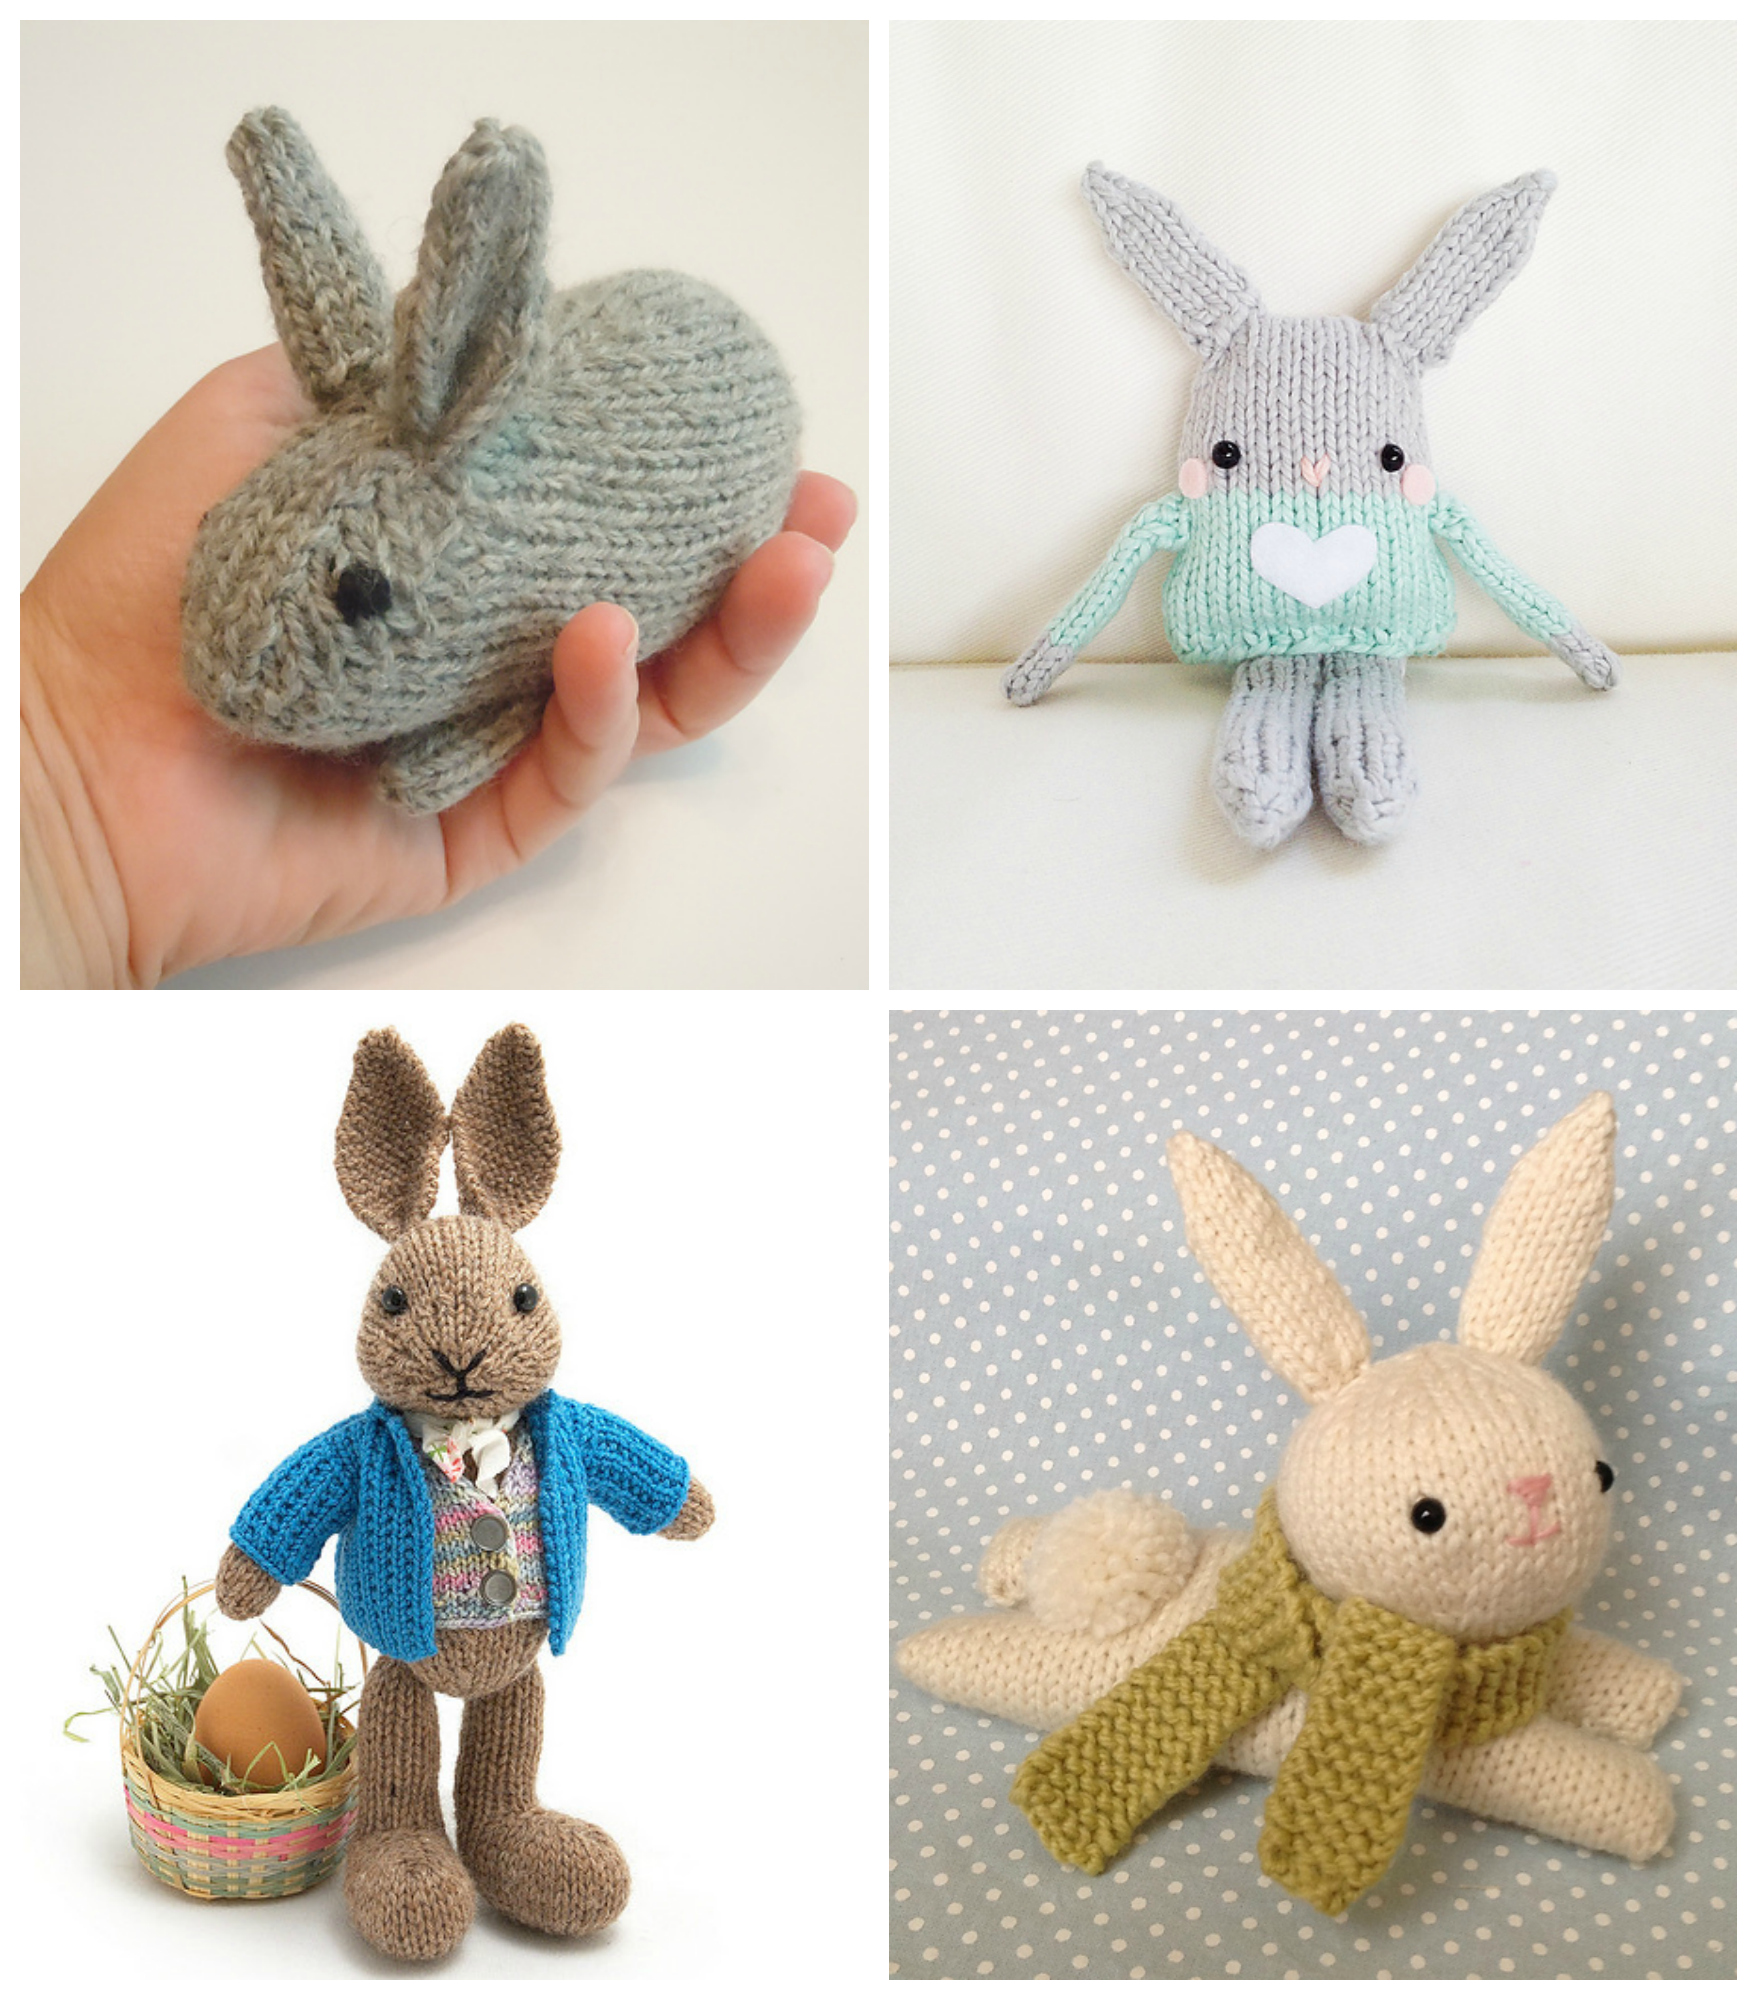 Easter Bunny Knitting Pattern : Easter Knitting Ideas and Patterns: Bunnies, Chicks, Lambs and More - Knitted...